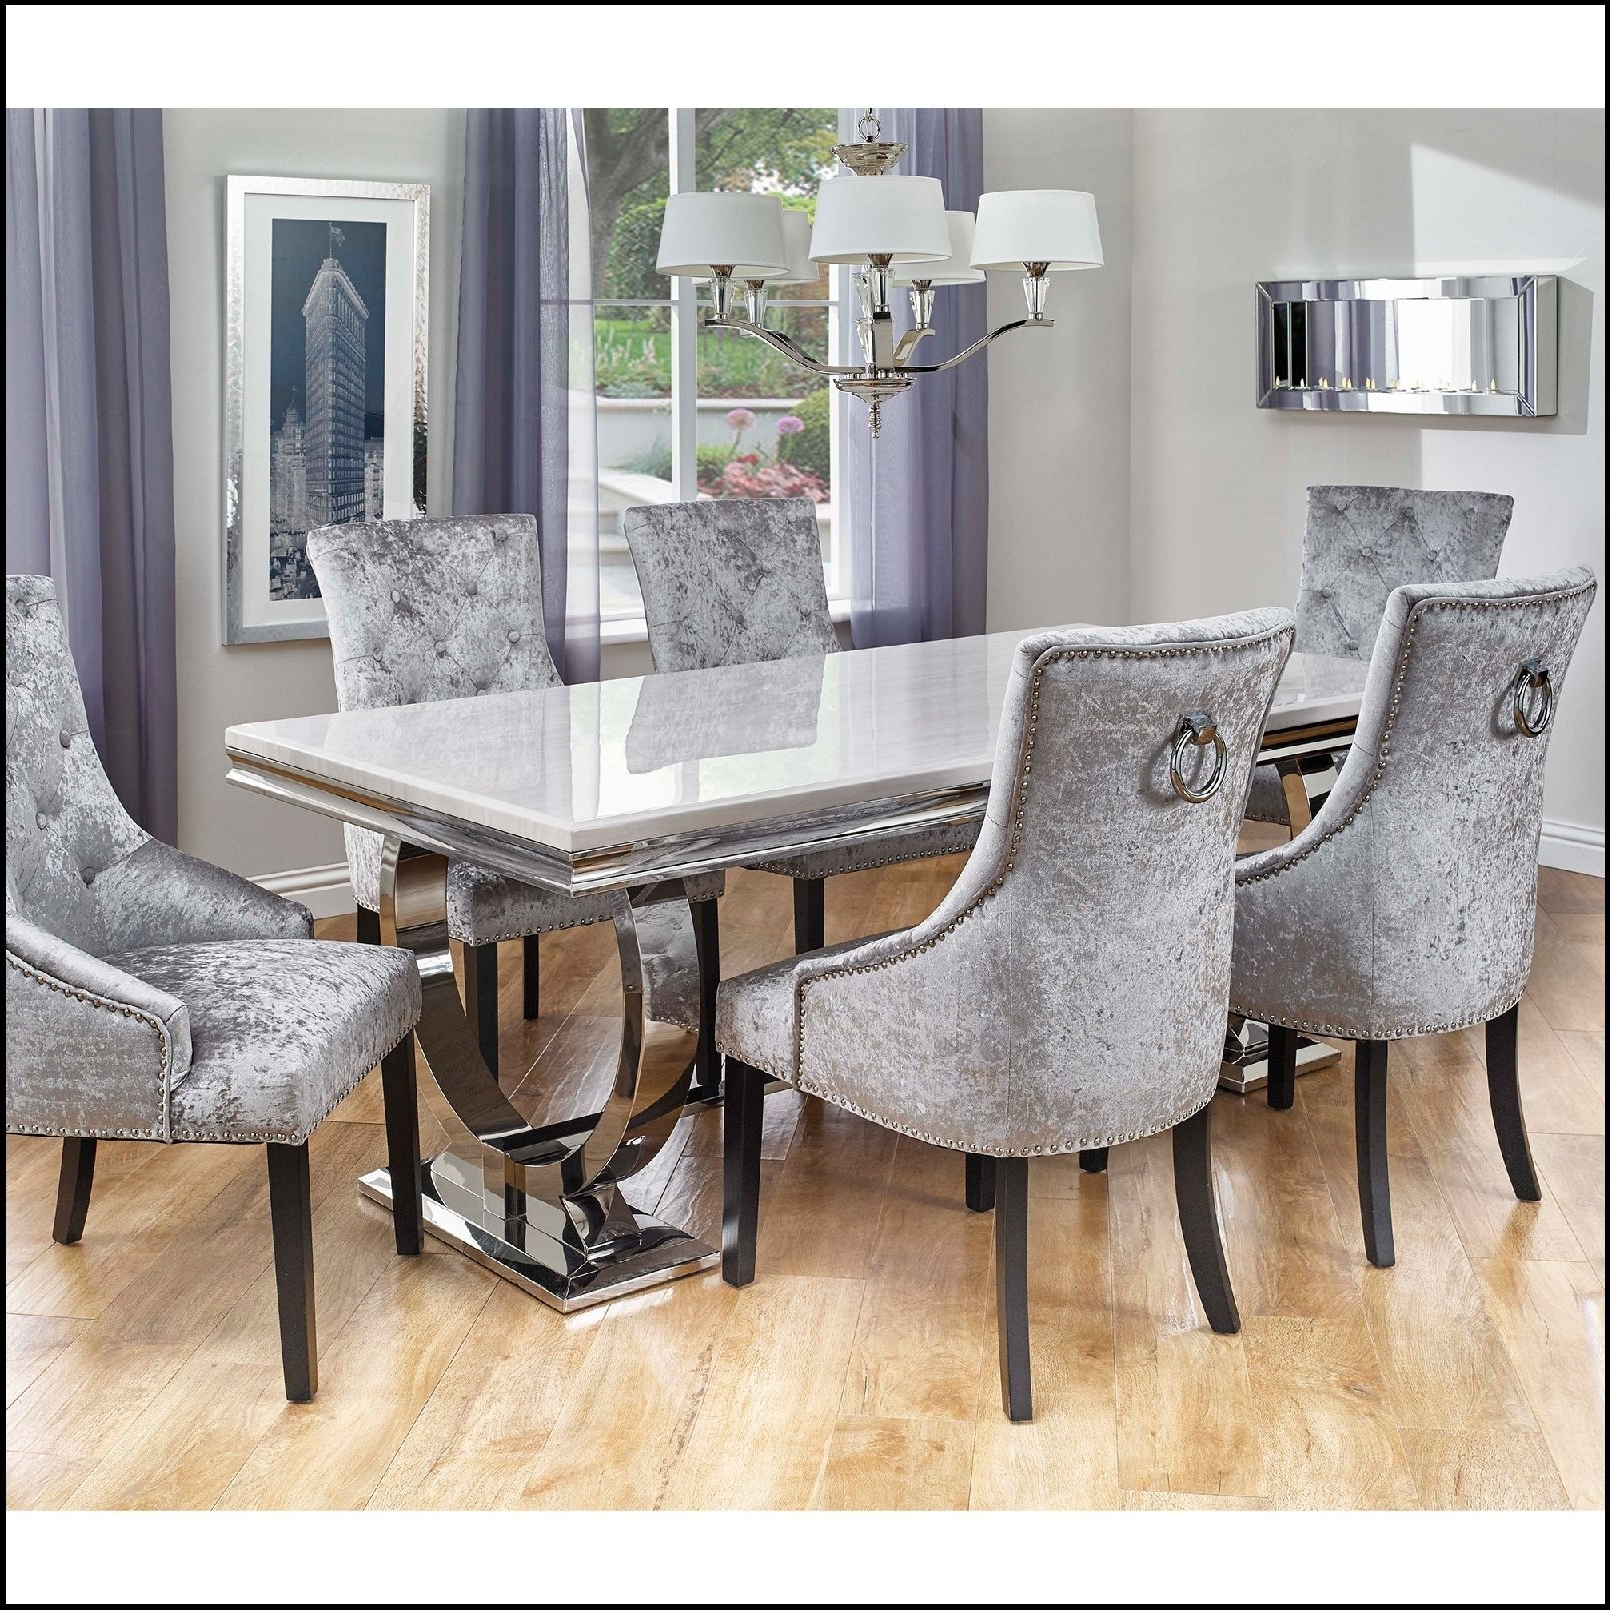 Beautifull Dining Room Tables With 6 Chairs Dining Room Design With Inside Most Popular 6 Seat Dining Tables (View 6 of 25)